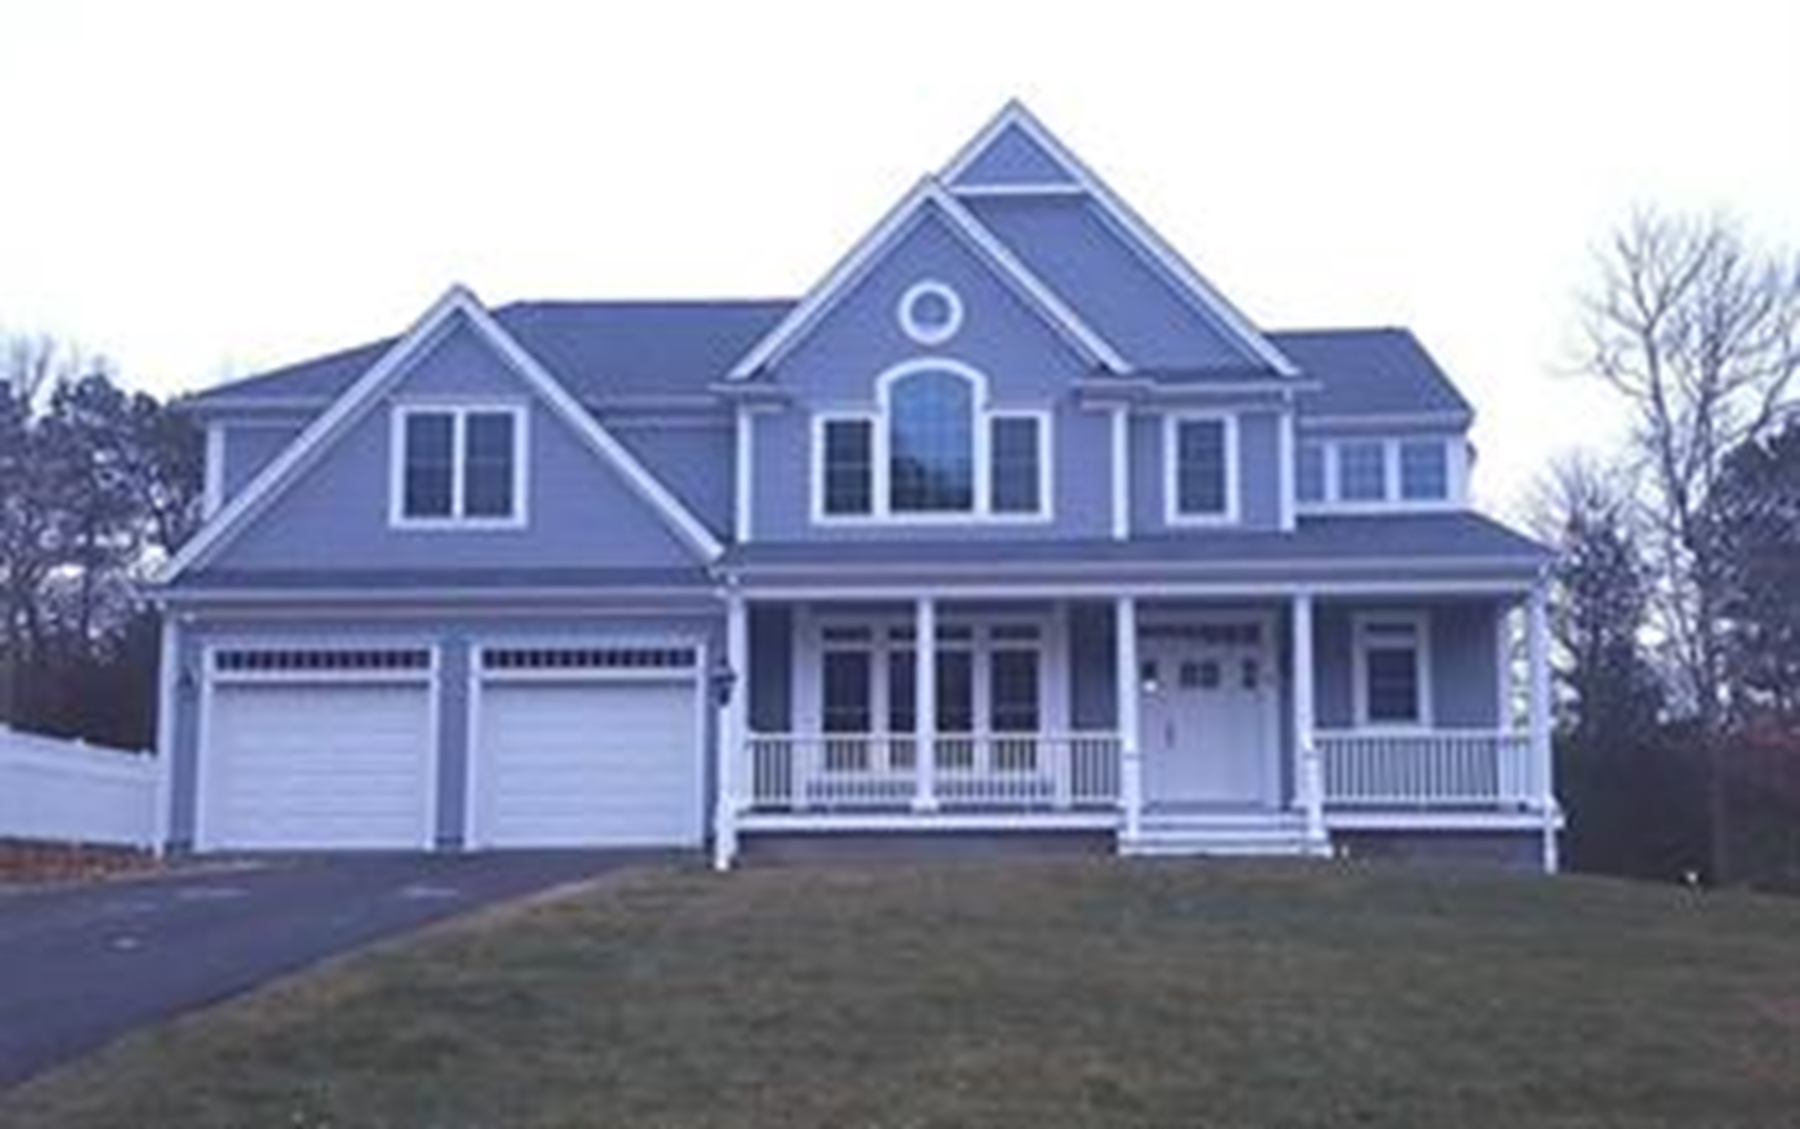 Single Family Home for Sale at Highland Park New Construction Lincoln Model Lot 21 Stoney Brook Road Hopkinton, Massachusetts 01748 United States